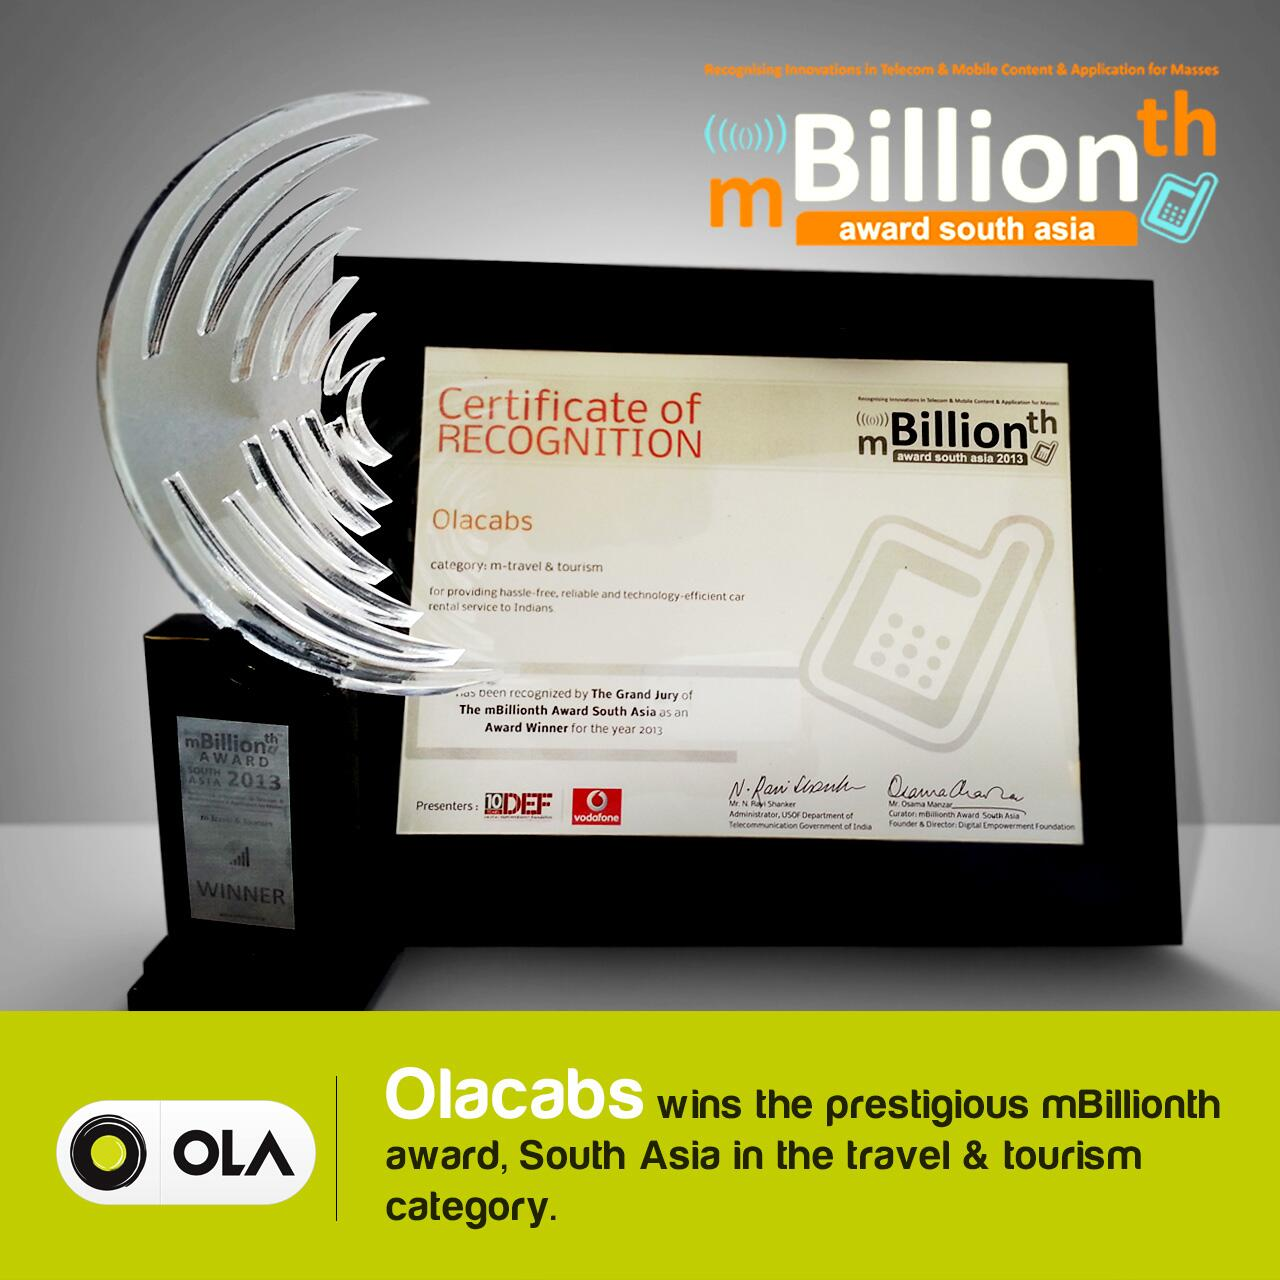 RT @Olacabs: Love our mobile app? The jury loved it too! Olacabs - proud winners of the mBillionth Award, South Asia- 2013 http://t.co/9DMWNyr35S